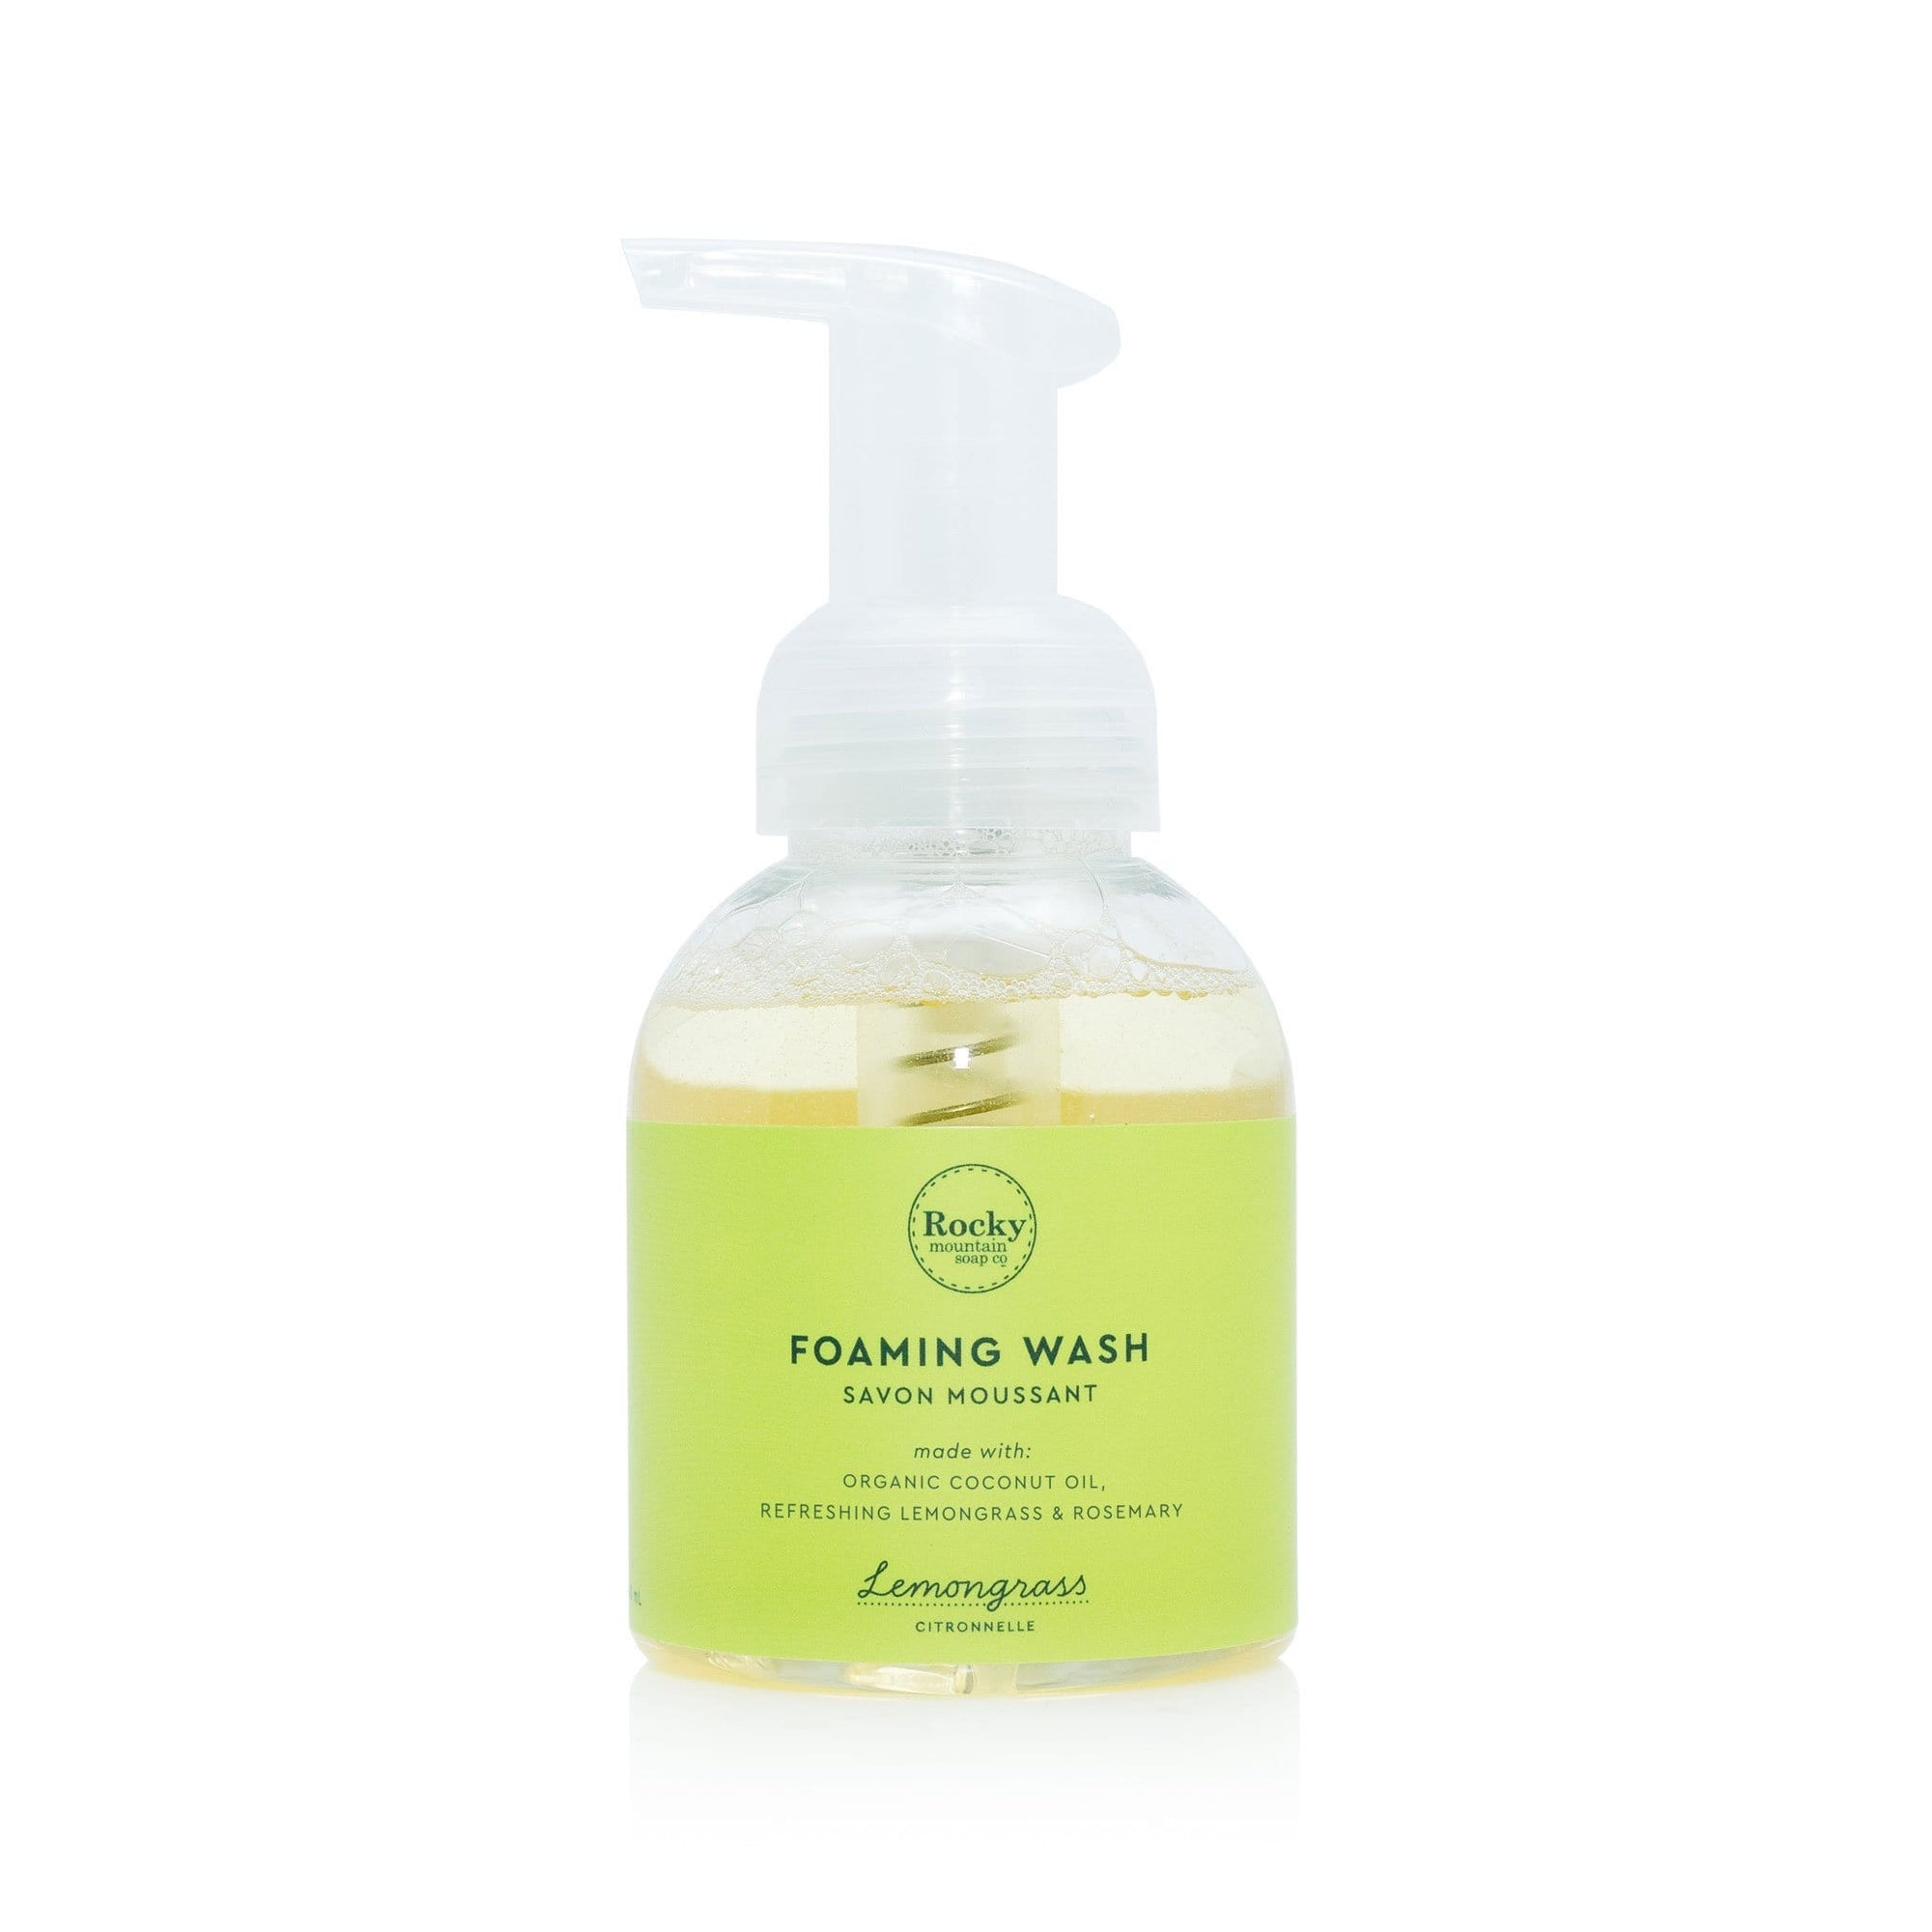 lemongrass foaming wash